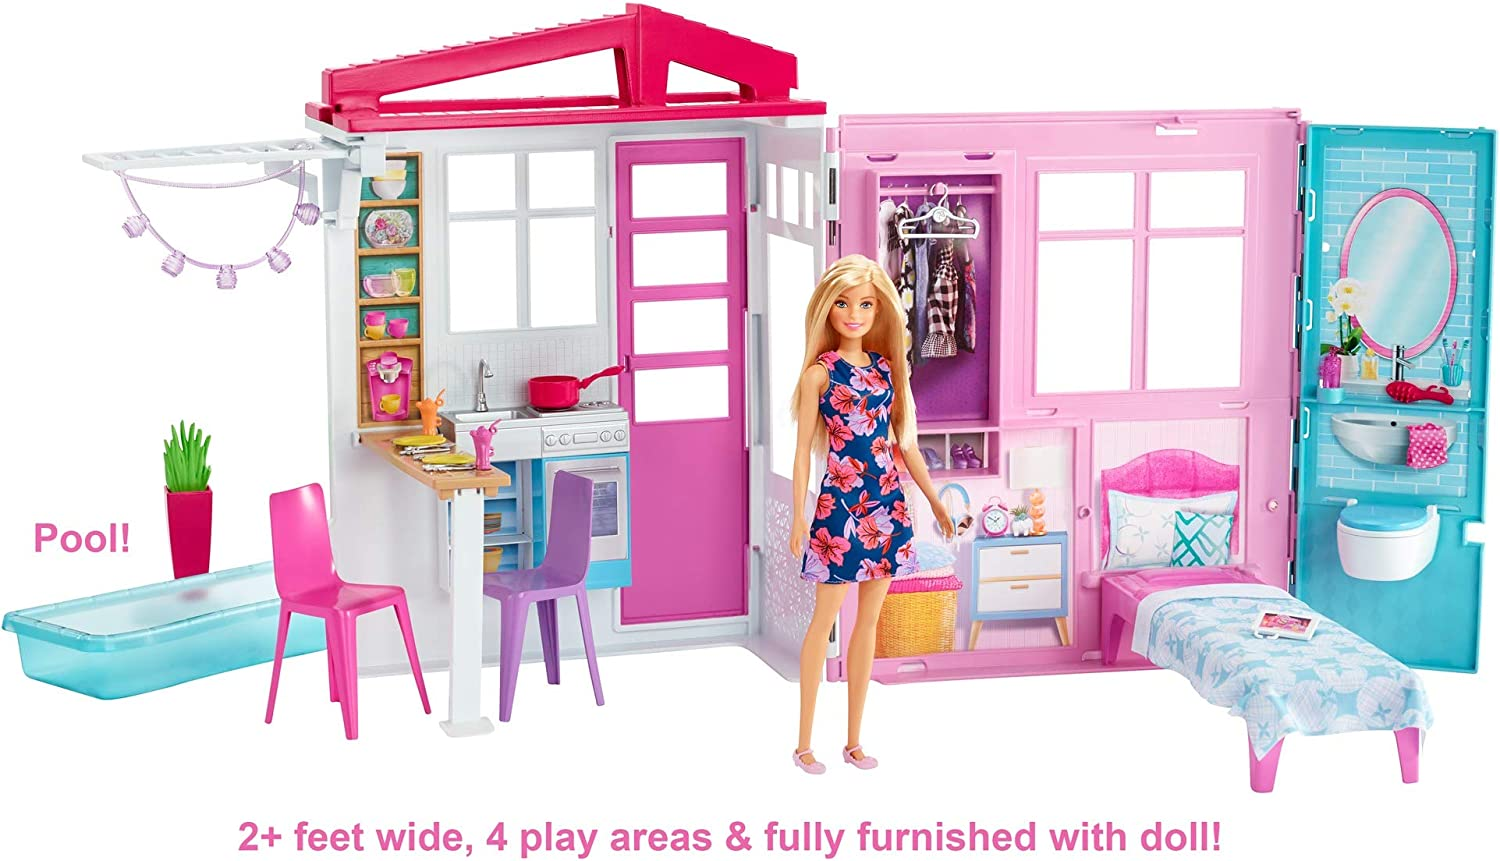 Amazon Com Barbie Doll And Dollhouse Portable 1 Story Playset With Pool And Accessories For 3 To 7 Year Olds Toys Games